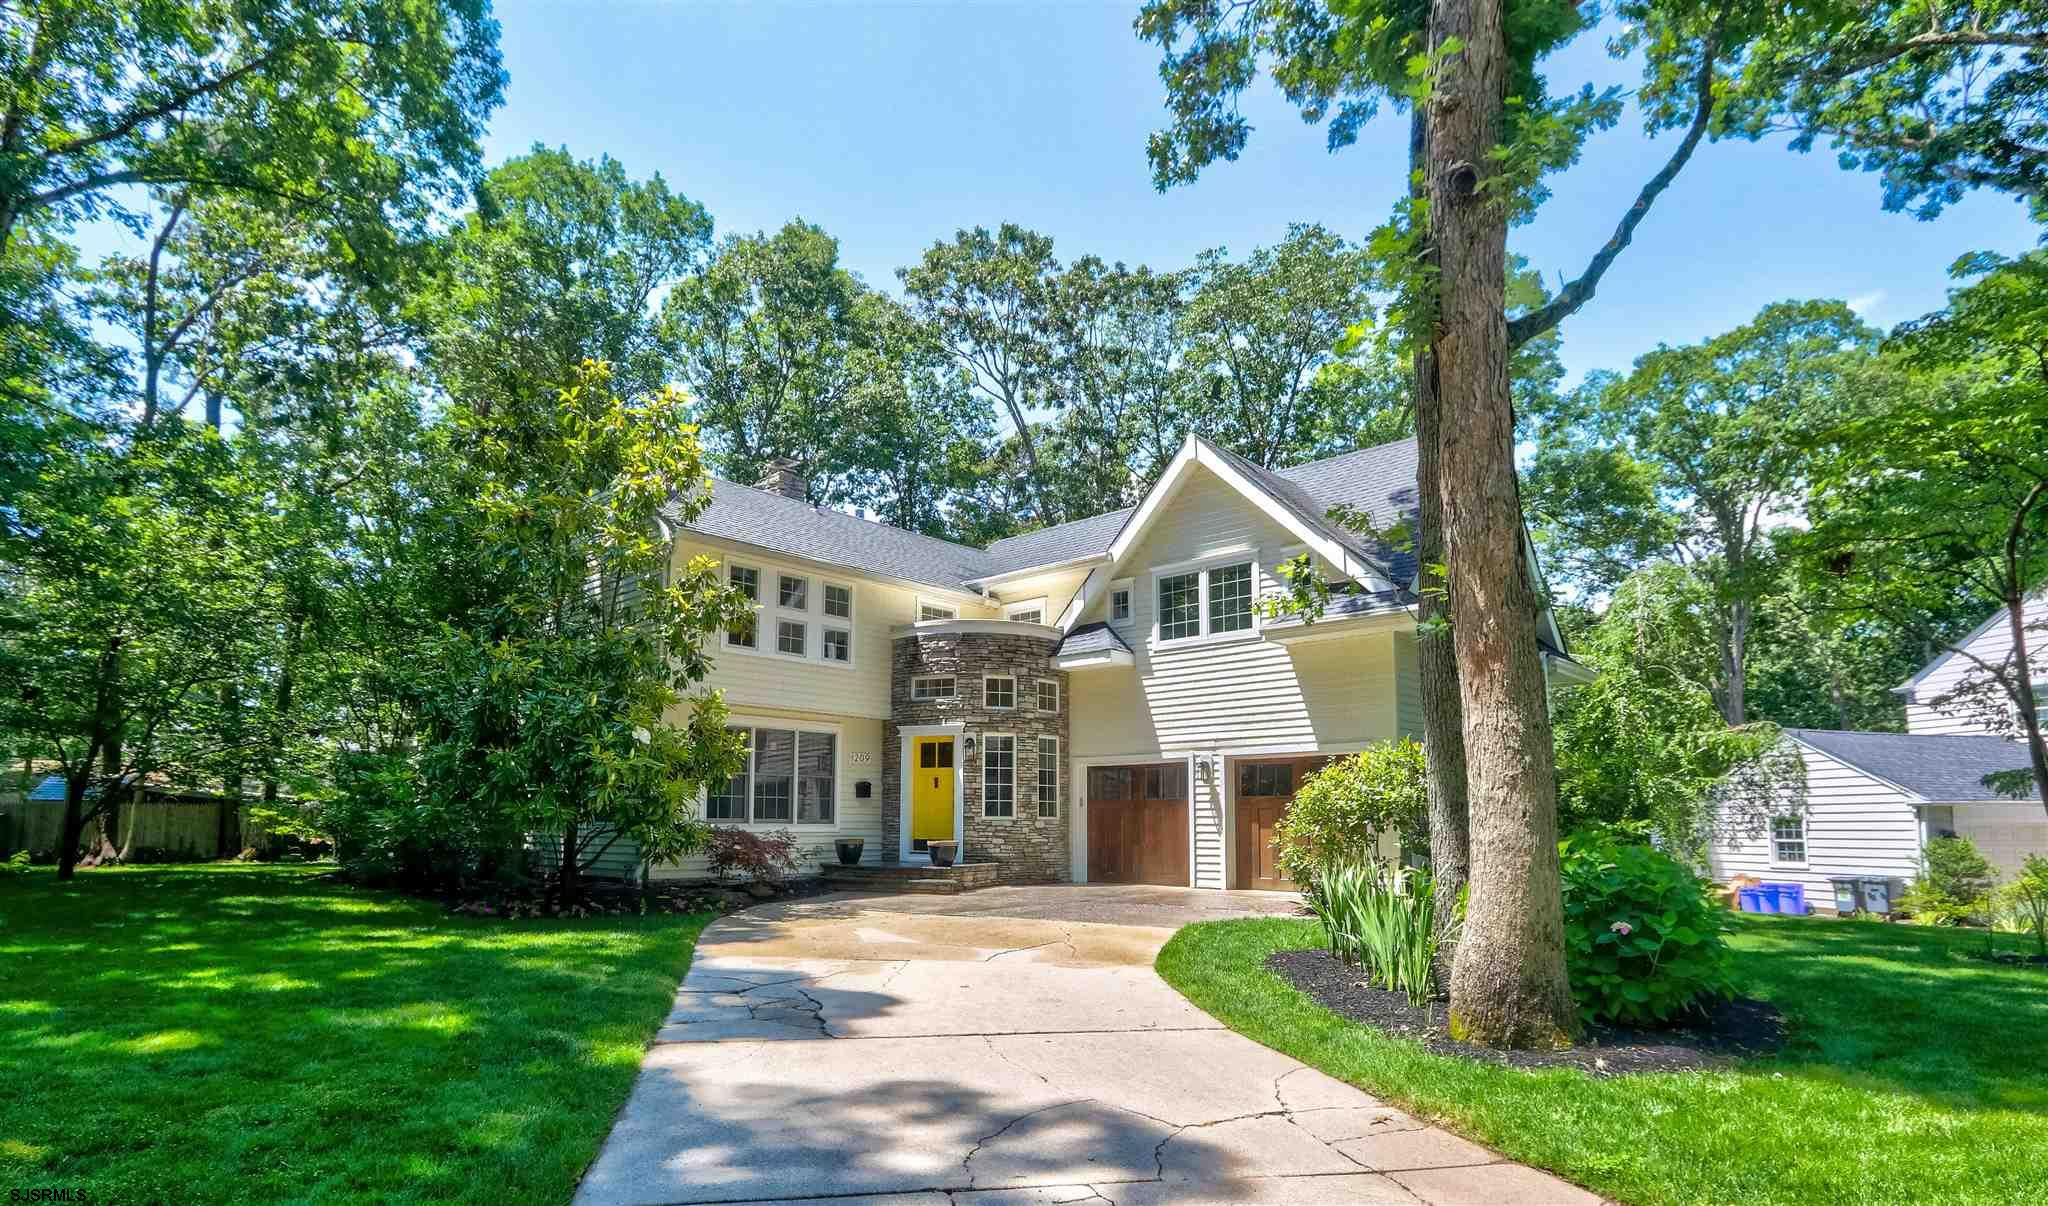 Stunning completely renovated 5 bedroom 4.5 baths Executive home in the popular Schoolhouse/Belhaven